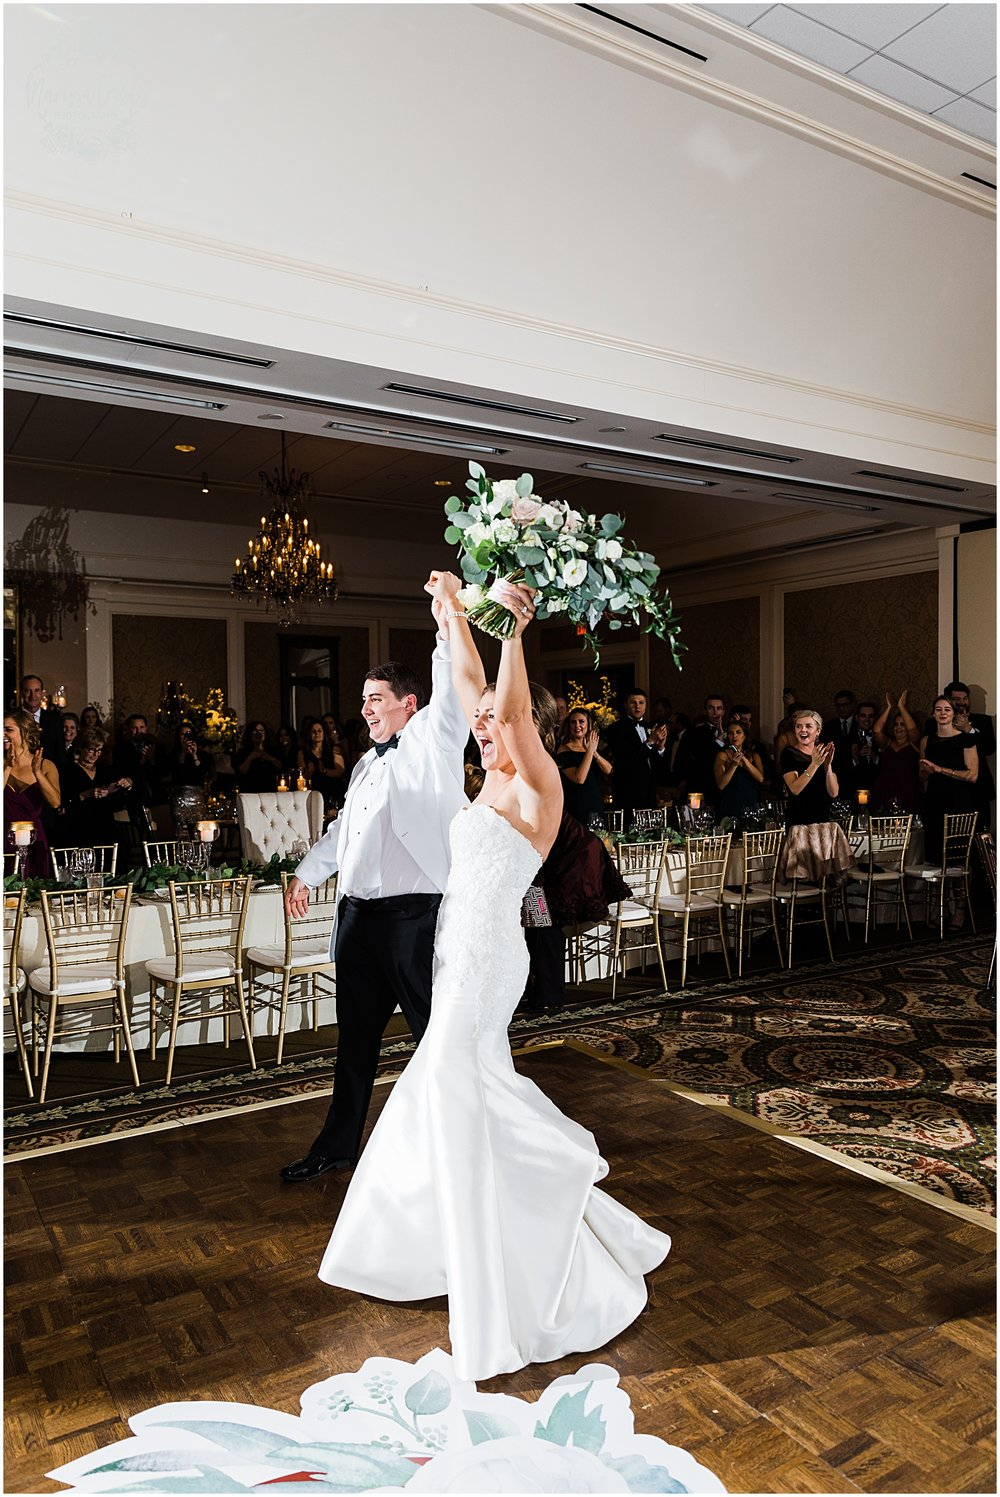 JOE & CAROLINE MARRIED | INDIAN HILLS COUNTRY CLUB | MARISSA CRIBBS PHOTOGRAPHY_7279.jpg